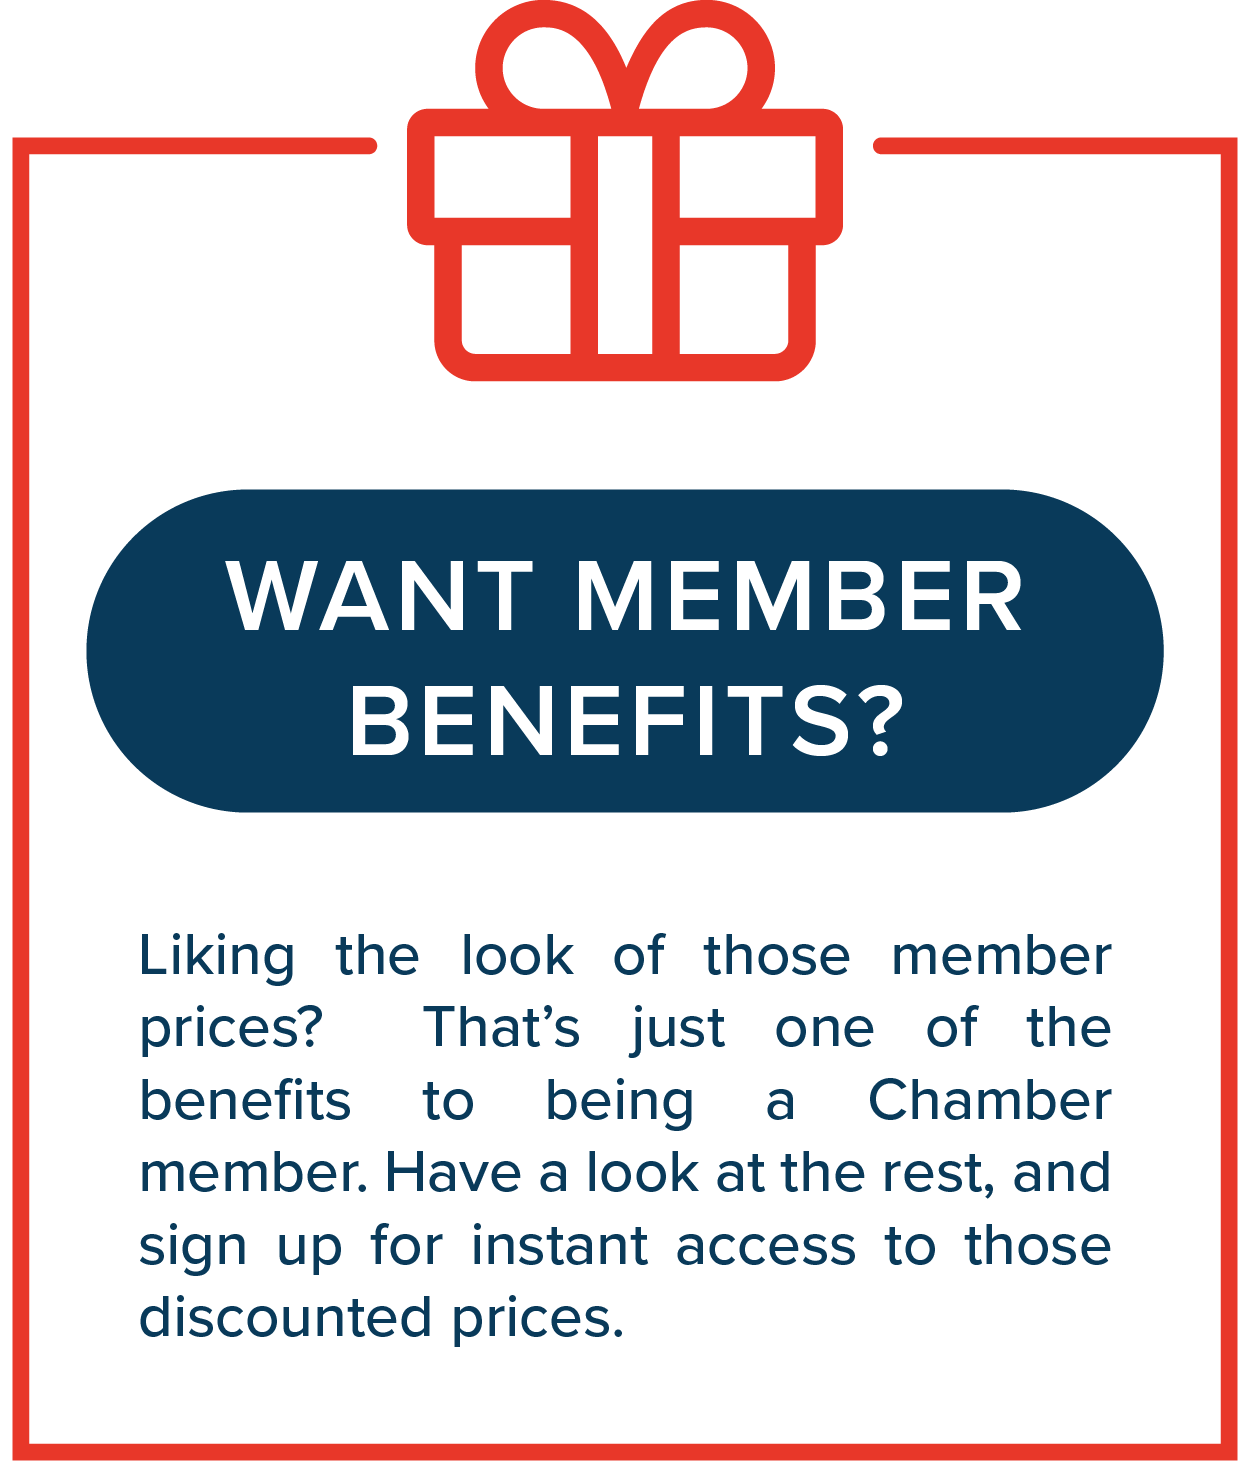 Want Member Benefits?   Liking the look of those member prices? That's just one of the benefits to being a Chamber member. Have a look at the rest, and sign up for instant access to those discounted prices.